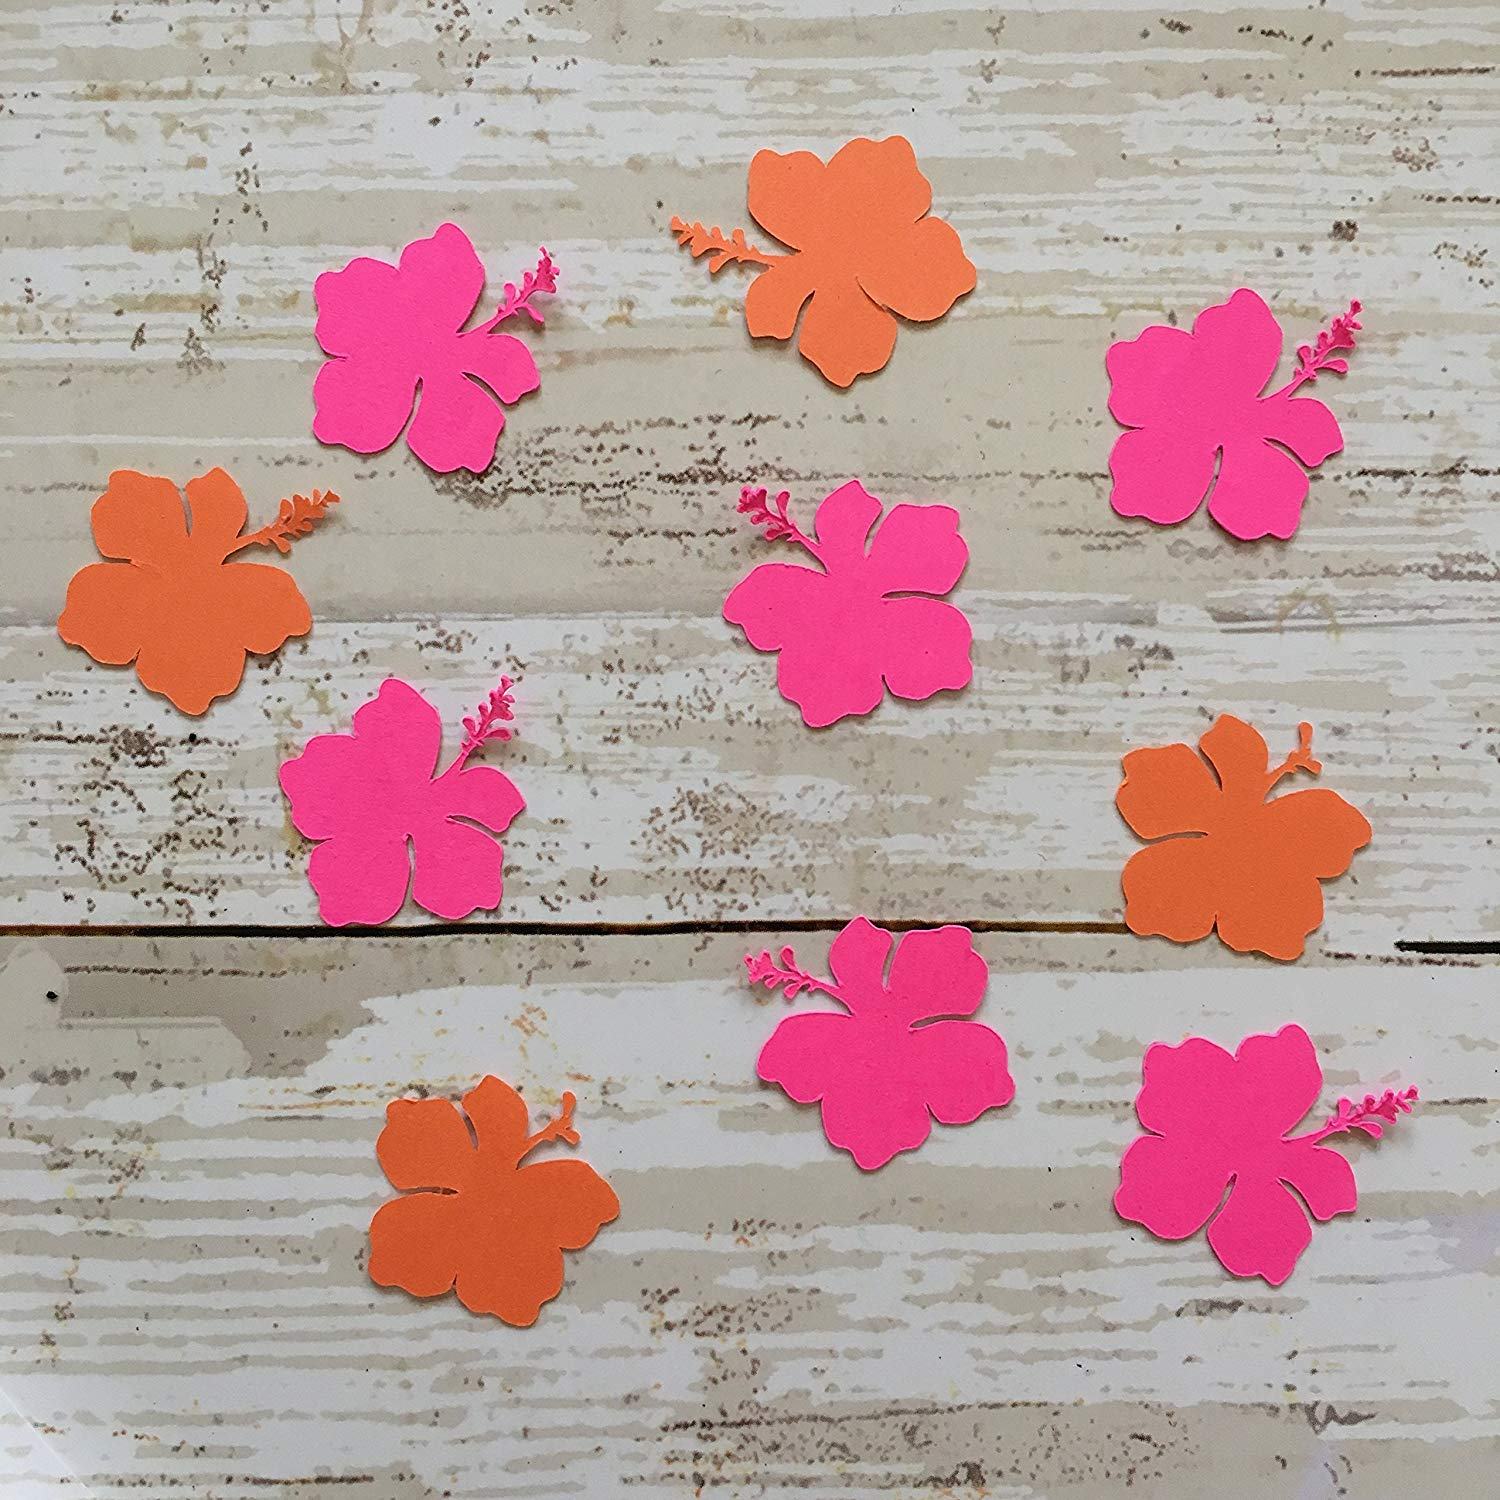 Cheap Flower Power Party Decorations Find Flower Power Party